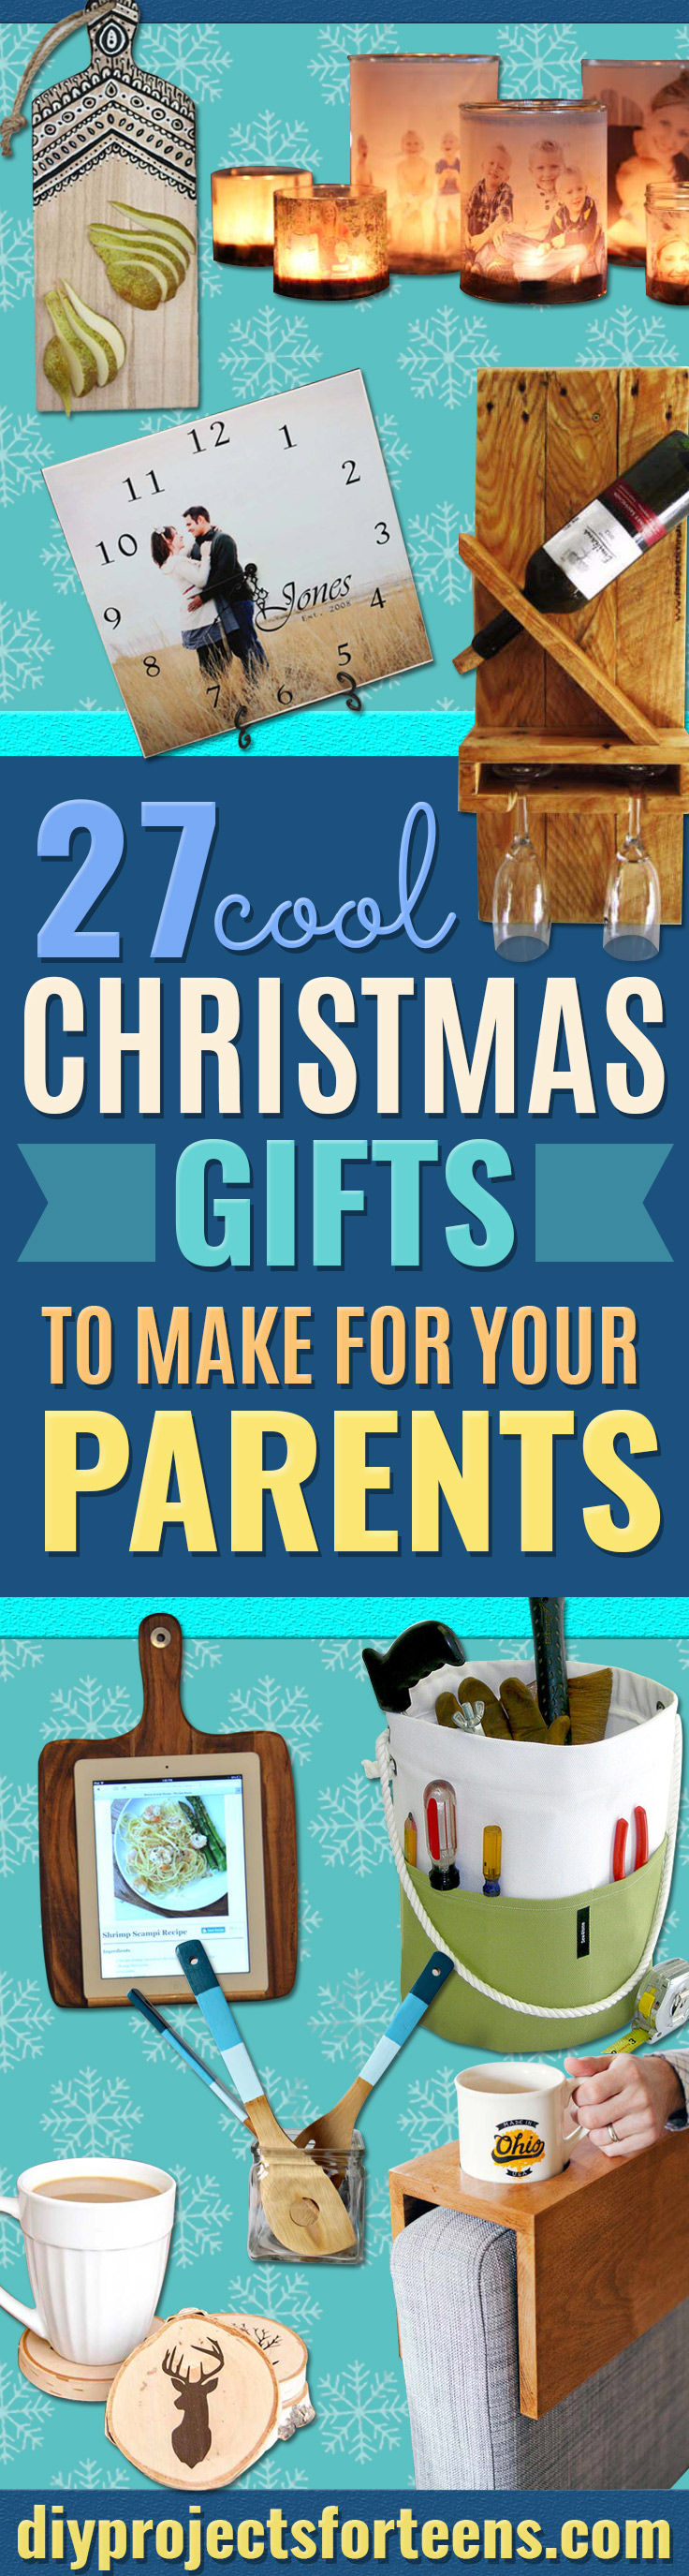 Ideas For Teens For Christmas